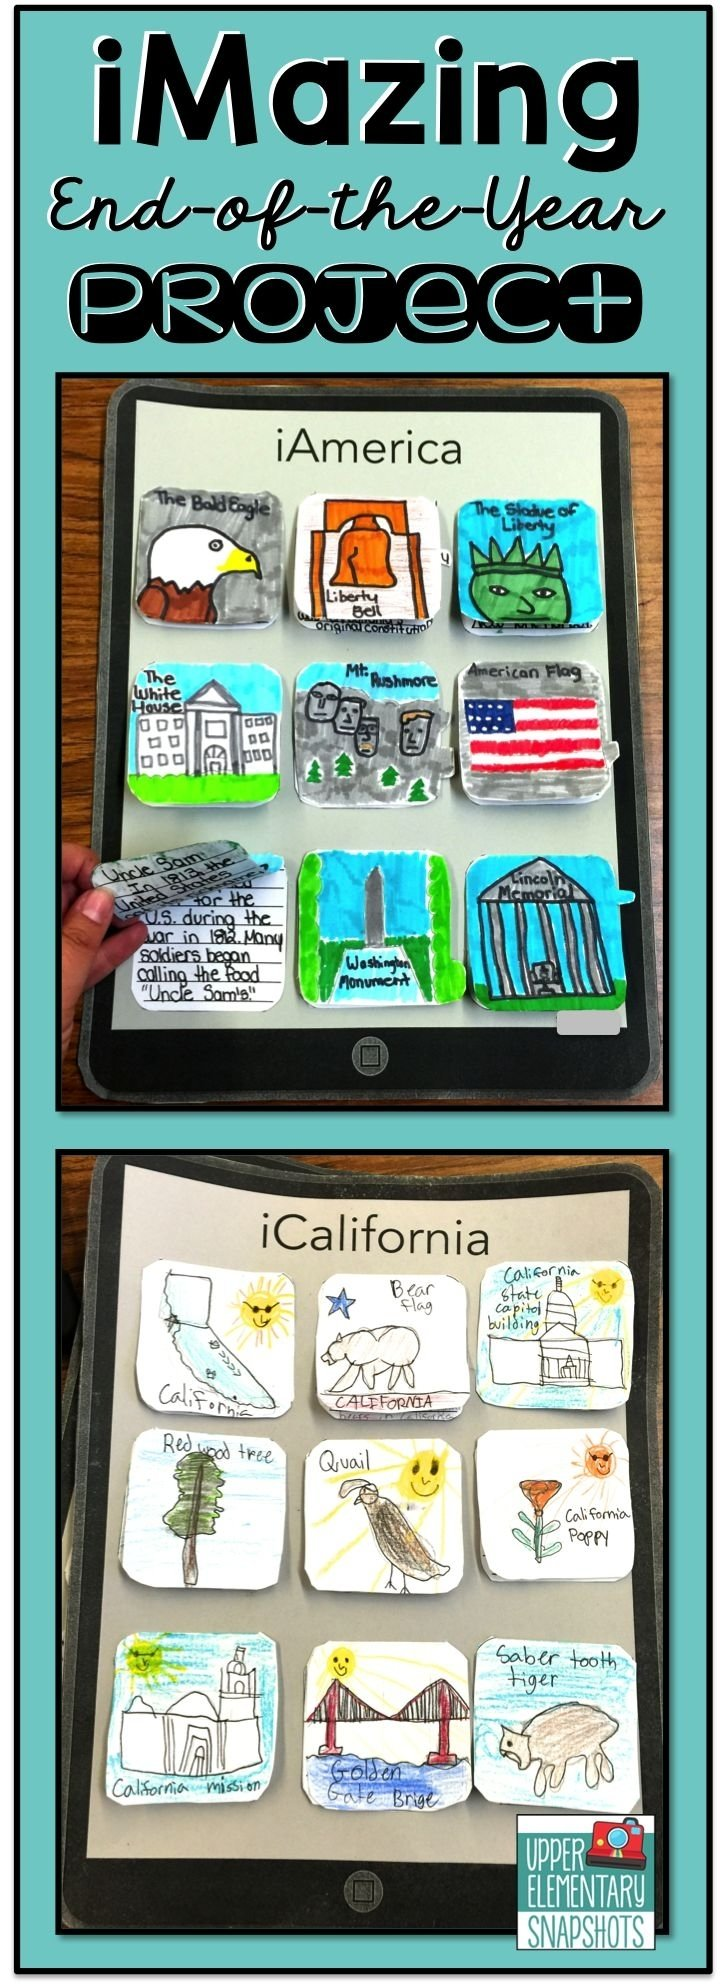 10 Most Popular High School English Project Ideas 1566 best elementary school library ideas images on pinterest 2021